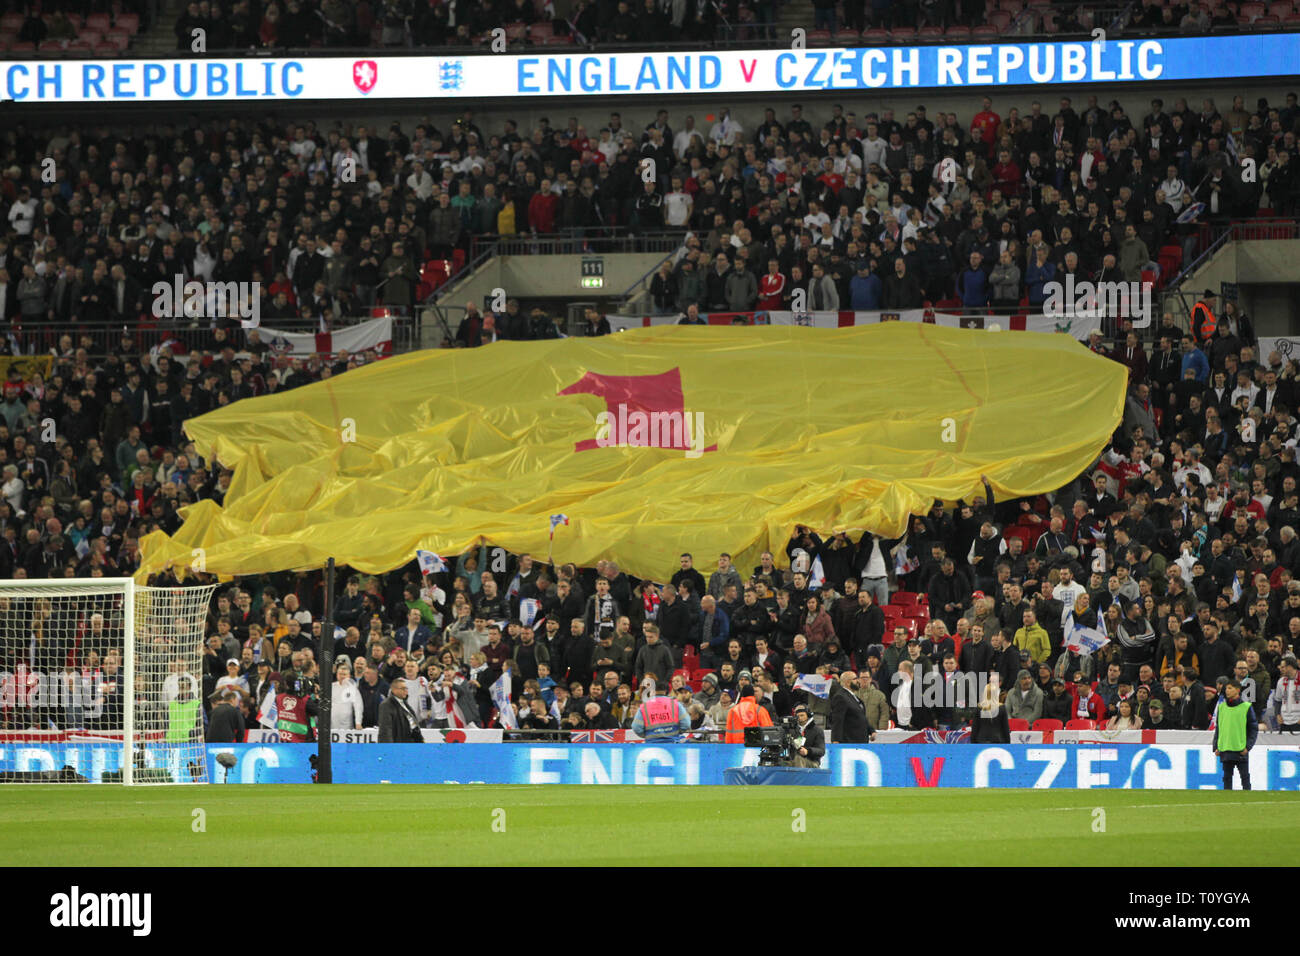 London, UK. 22nd Mar, 2019. Tributes to former England goalkeeper Gordon Banks before the UEFA Euro 2020 Qualifying Group A match between England and Czech Republic at Wembley Stadium on March 22nd 2019 in London, England. (Photo by Matt Bradshaw/phcimages.com) Credit: PHC Images/Alamy Live News - Stock Image